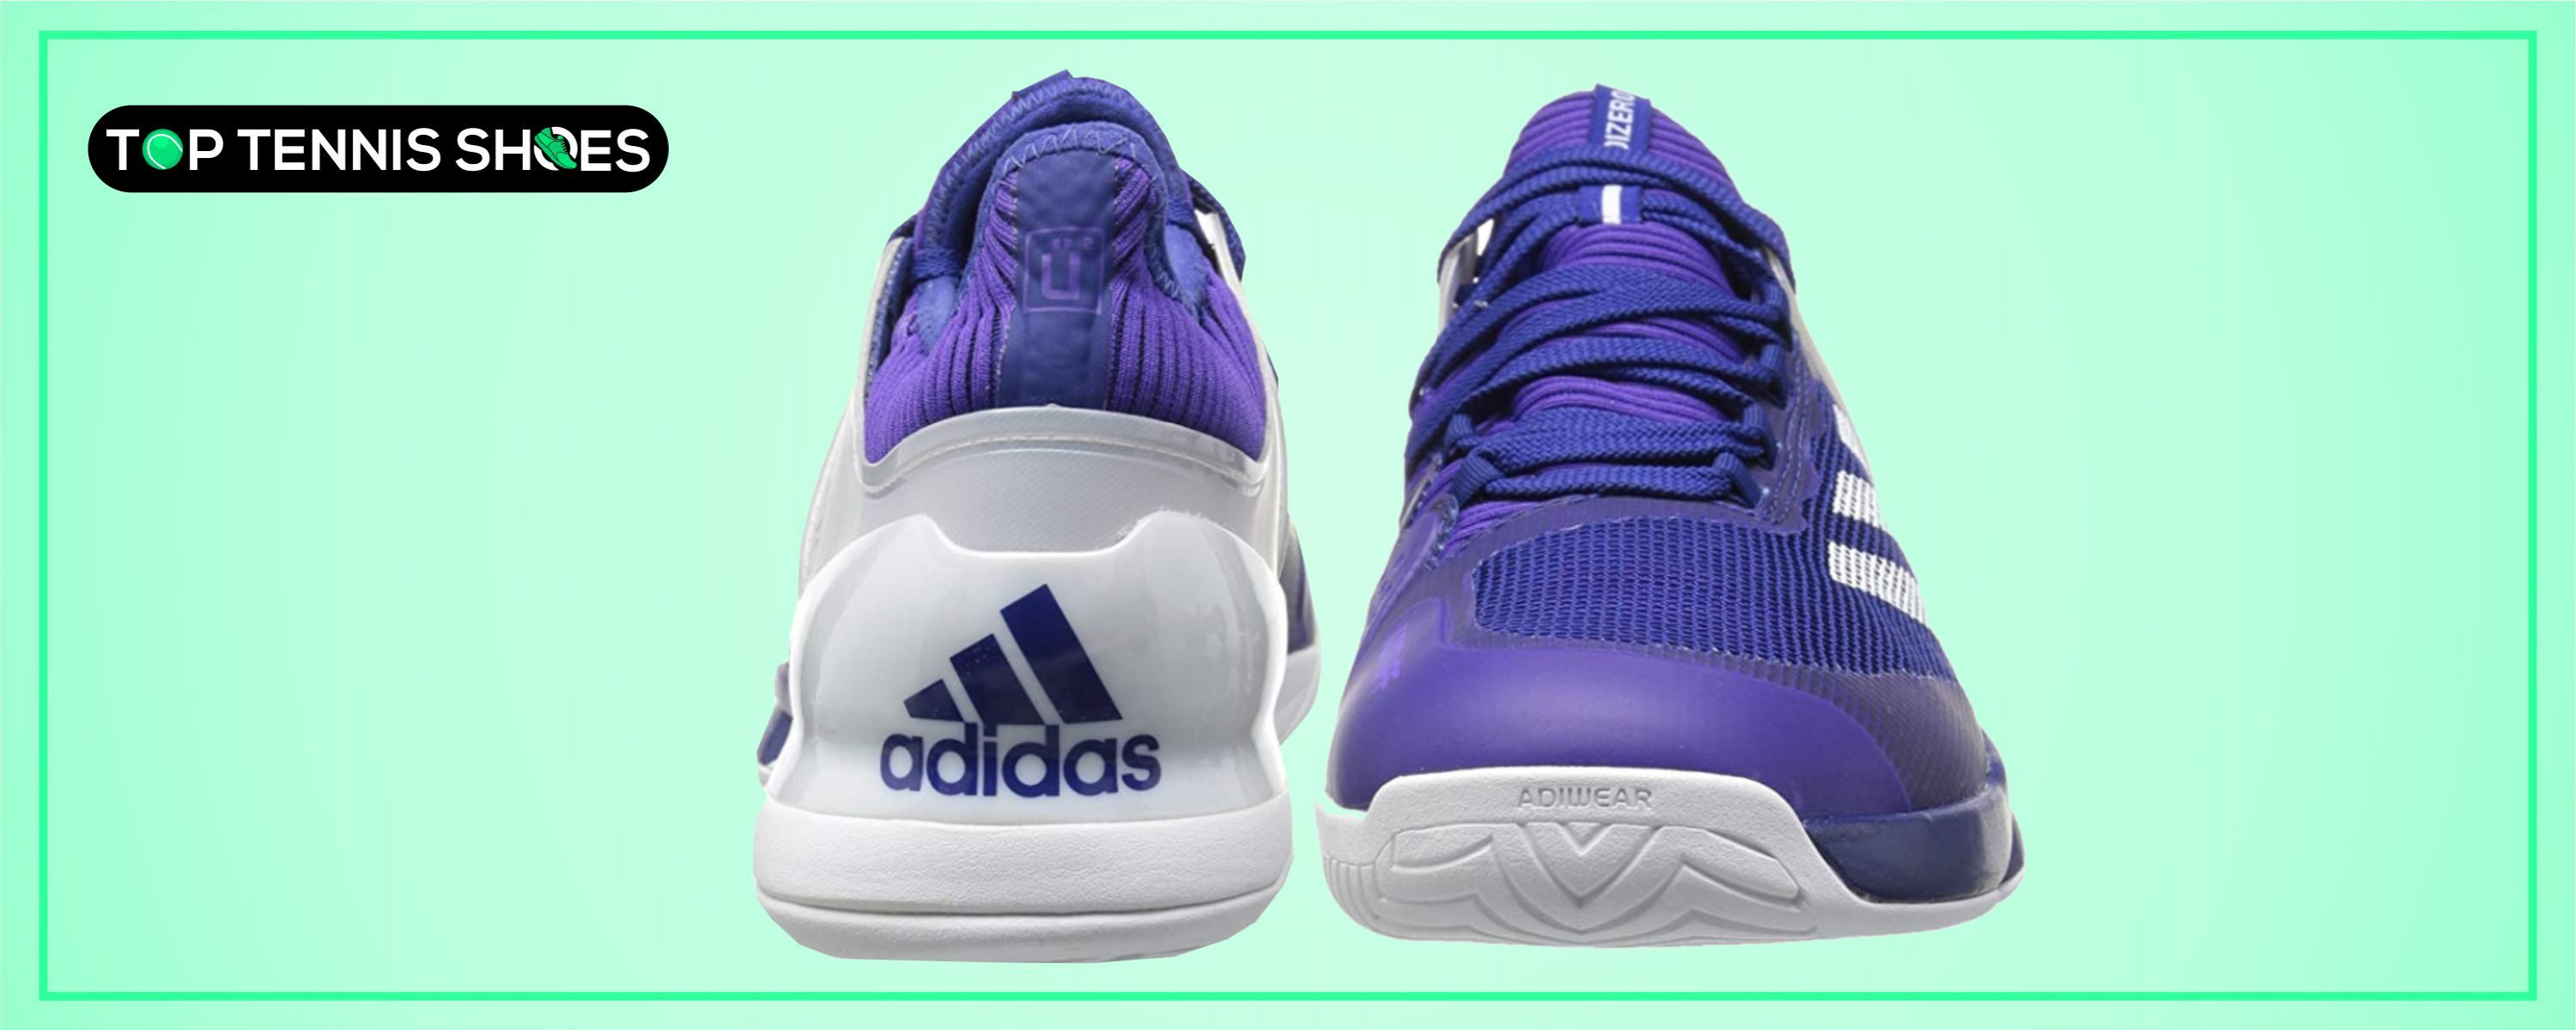 Best Adidas Comfort Tennis Shoes